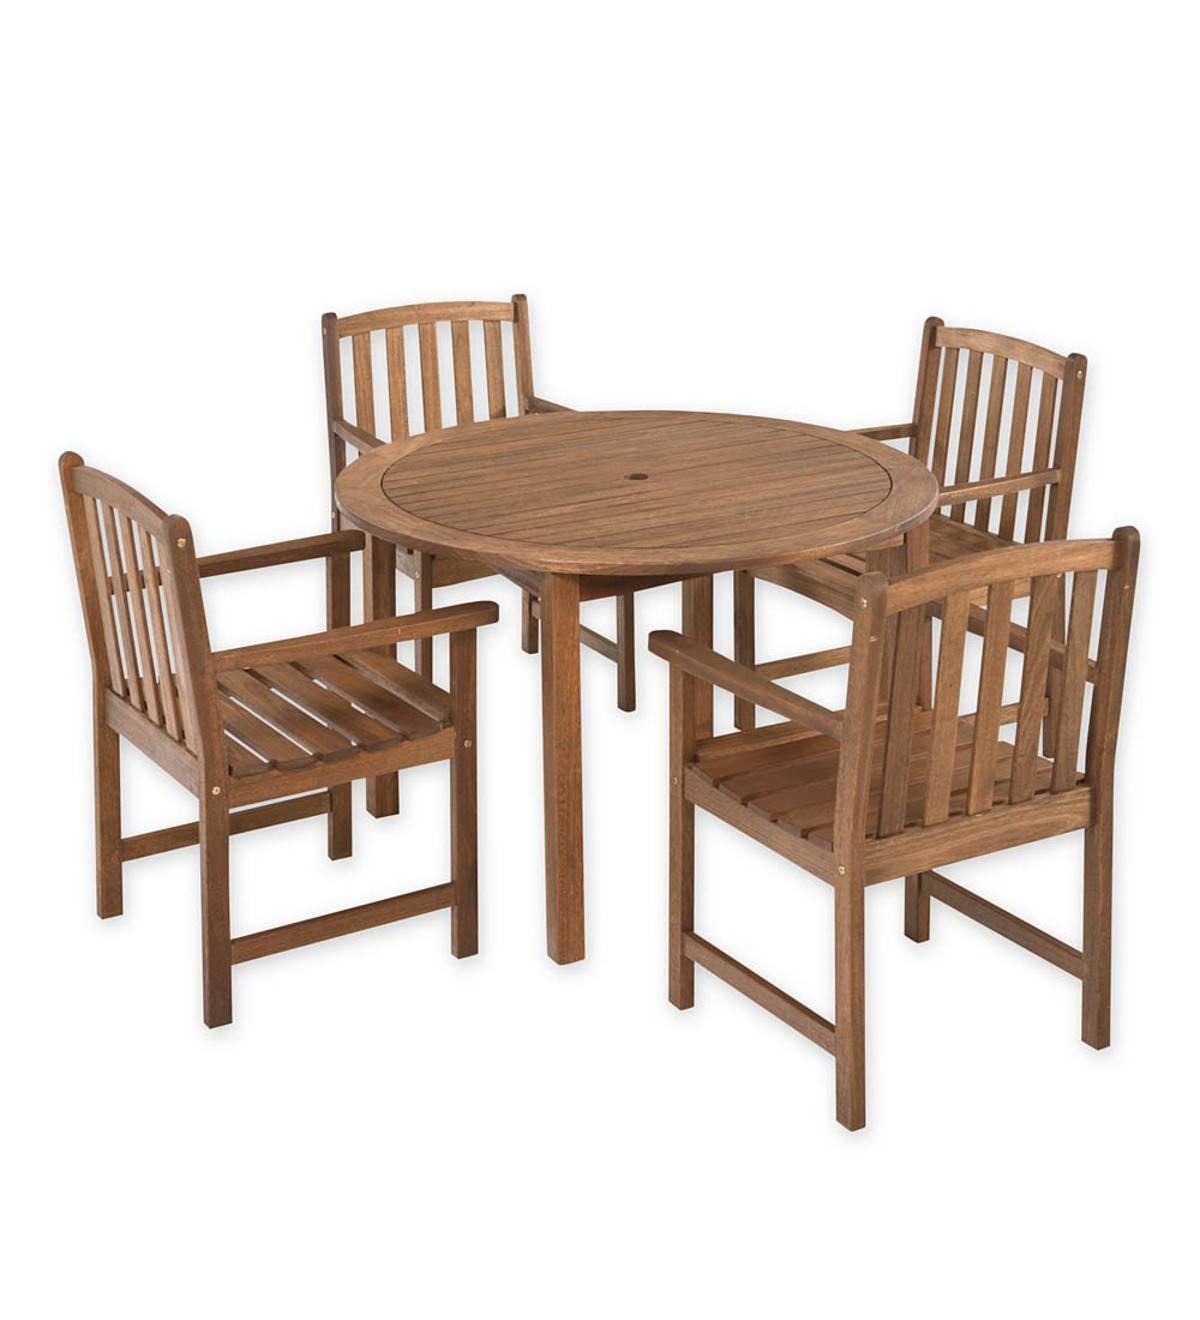 Lancaster Round Table Set, Round Table and 4 Chairs - Natural